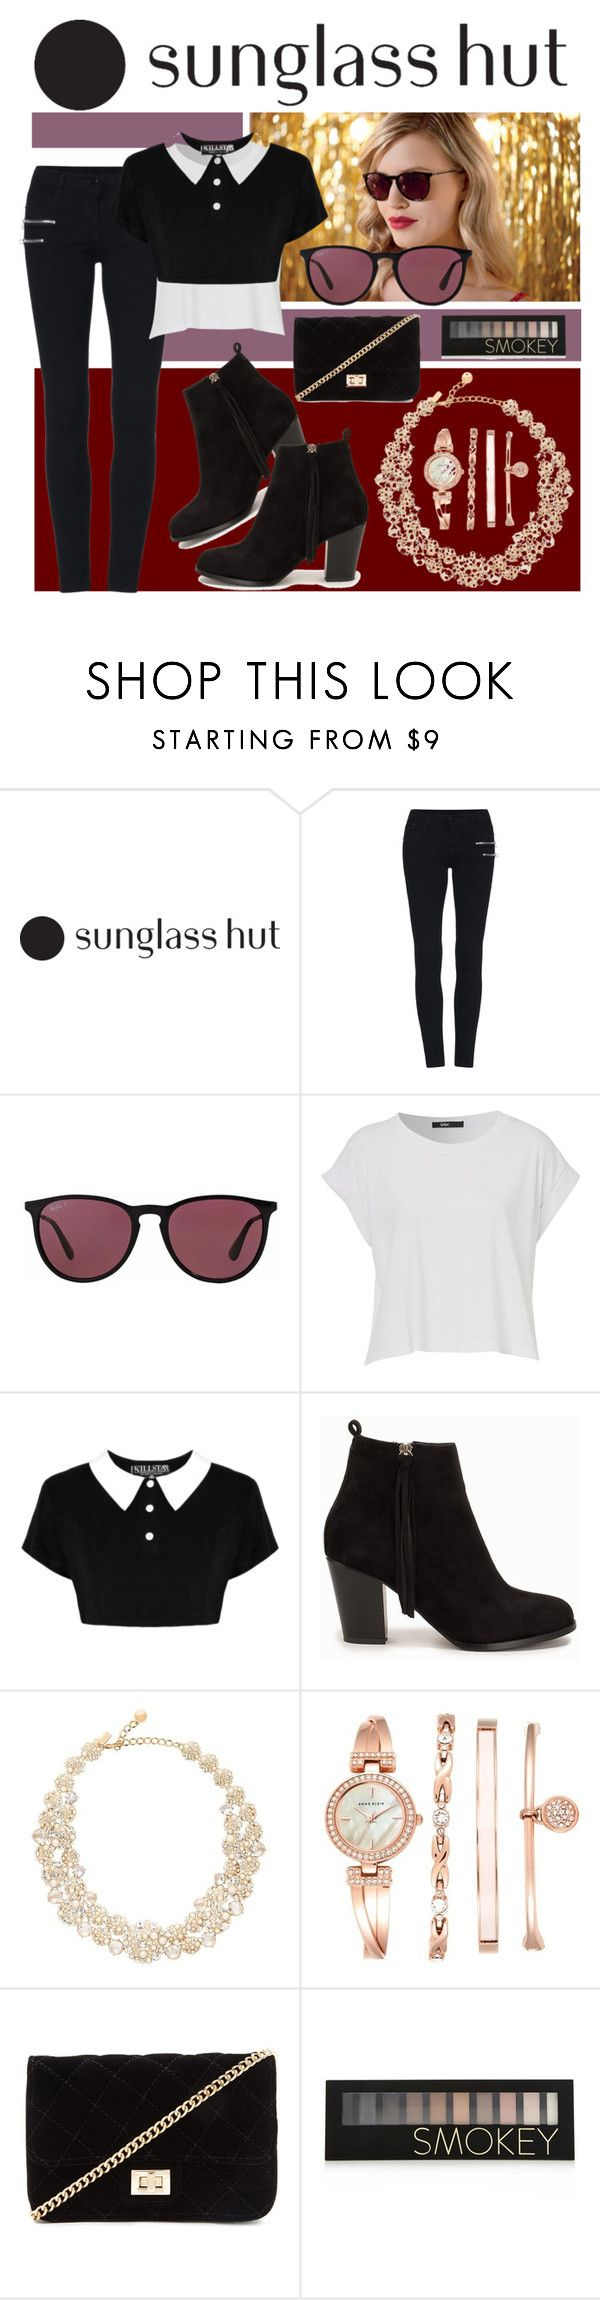 """""""Celebrate in Every Shade with Sunglass Hut: Contest Entry"""" by zoella13 on Polyvore featuring Ray-Ban, Nly Shoes, Kate Spade, Anne Klein, Forever 21, sunglasshut and ZoesContestEntries"""